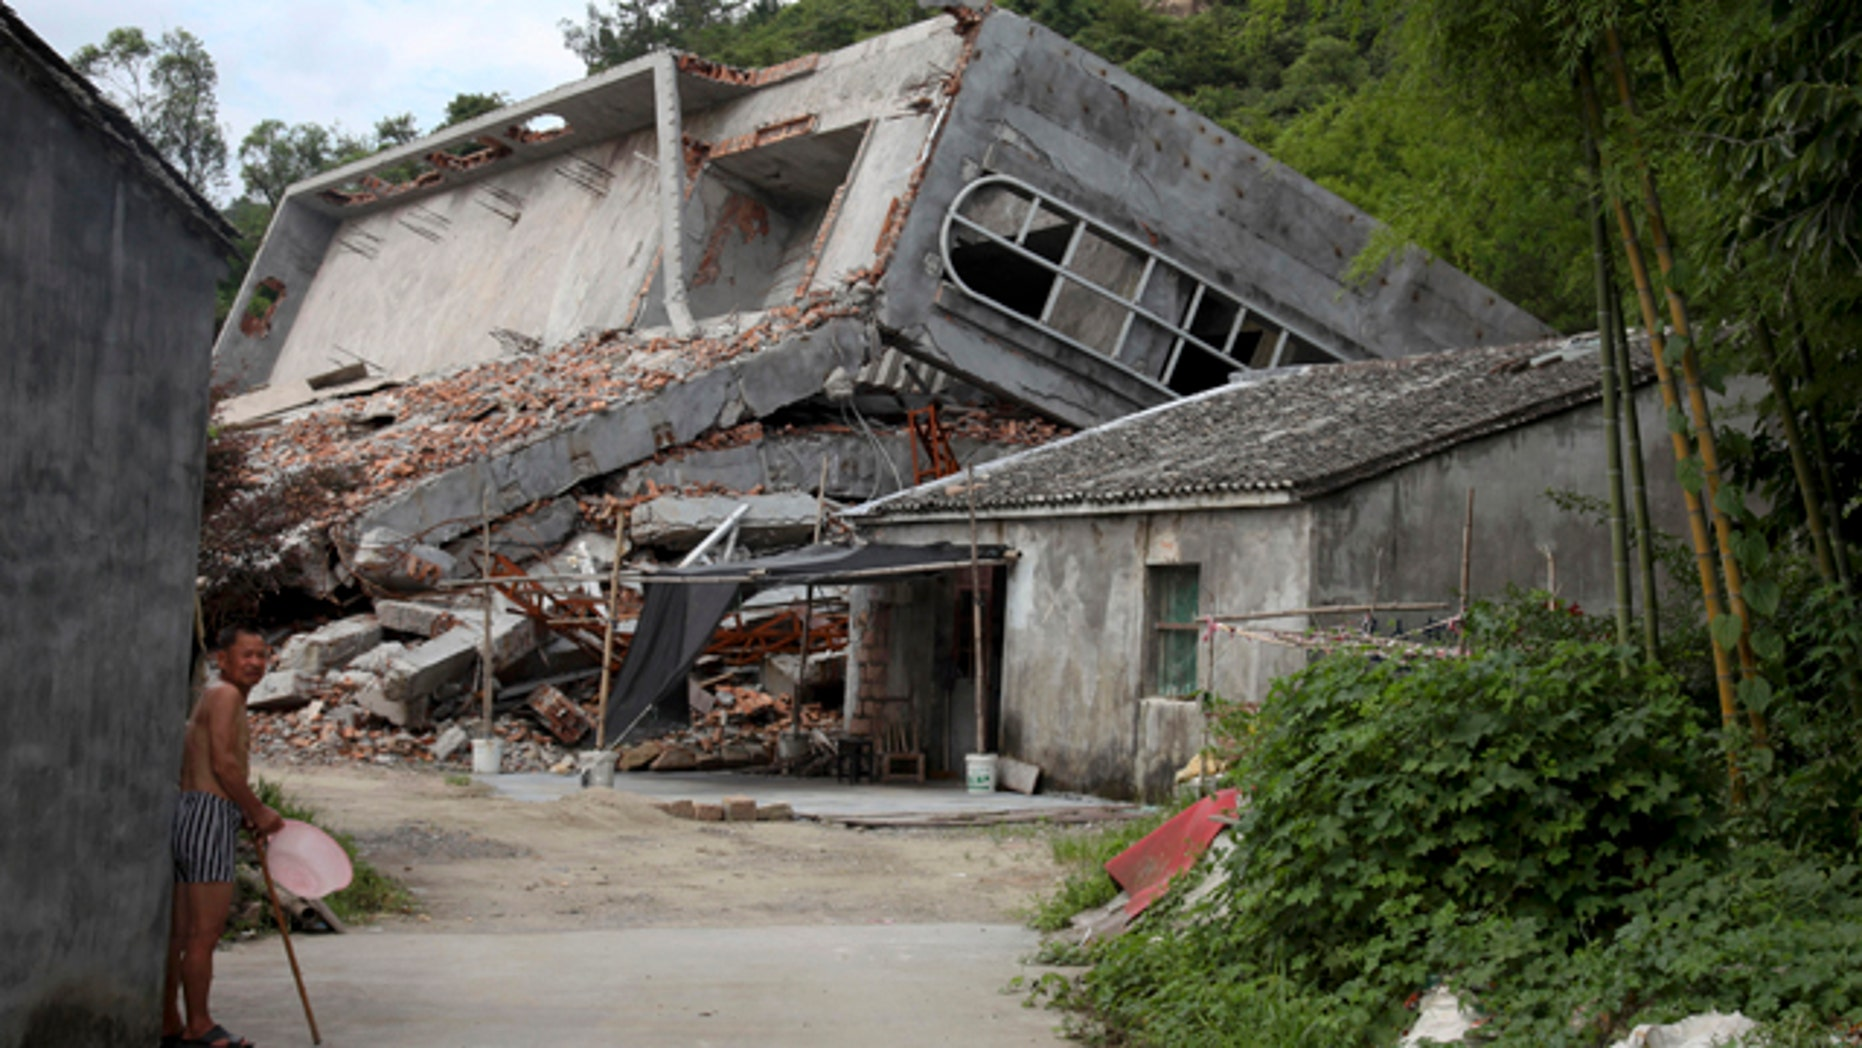 July 16, 2014: A man stands near the razed remains of a Catholic church in a village in Pingyang county of Wenzhou in eastern China's Zhejiang province. Across Zhejiang province, which hugs Chinas rocky southeastern coast, authorities have toppled, or threatened to topple, crosses at more than 130 churches. (AP Photo/Didi Tang)